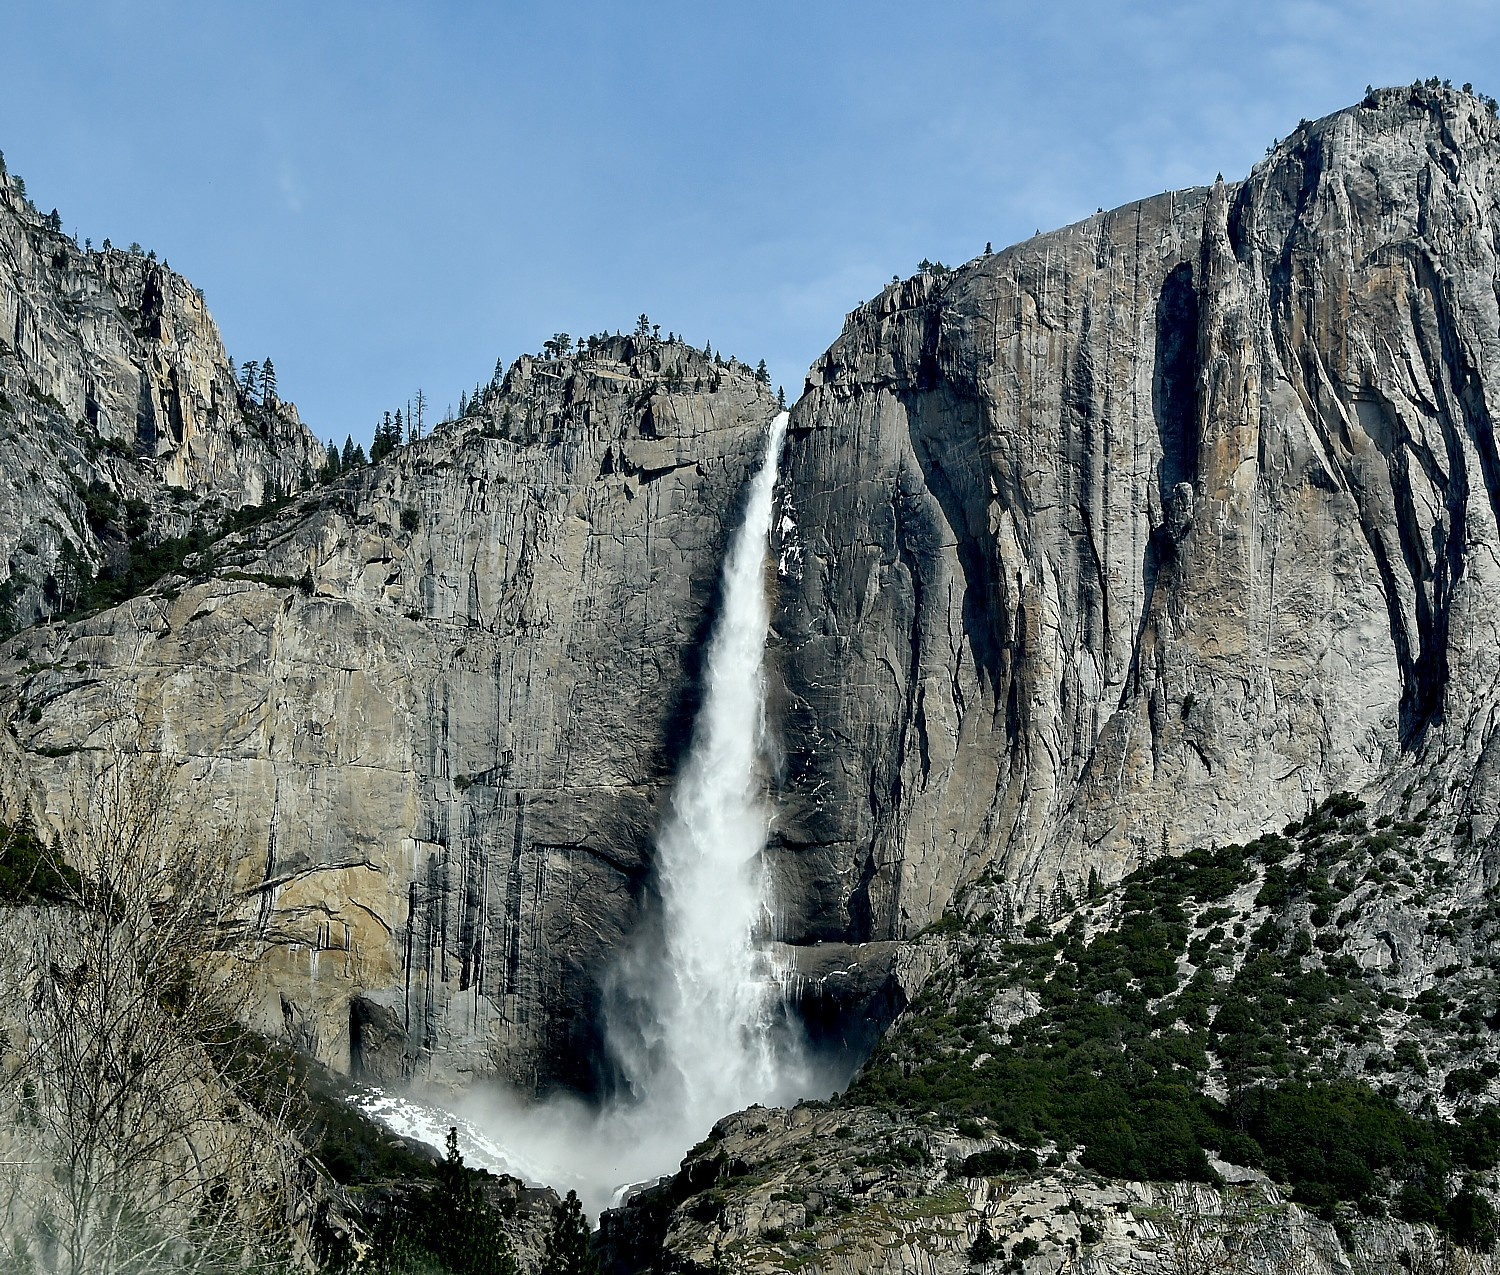 yosemite national park best valley hikes for first timers going